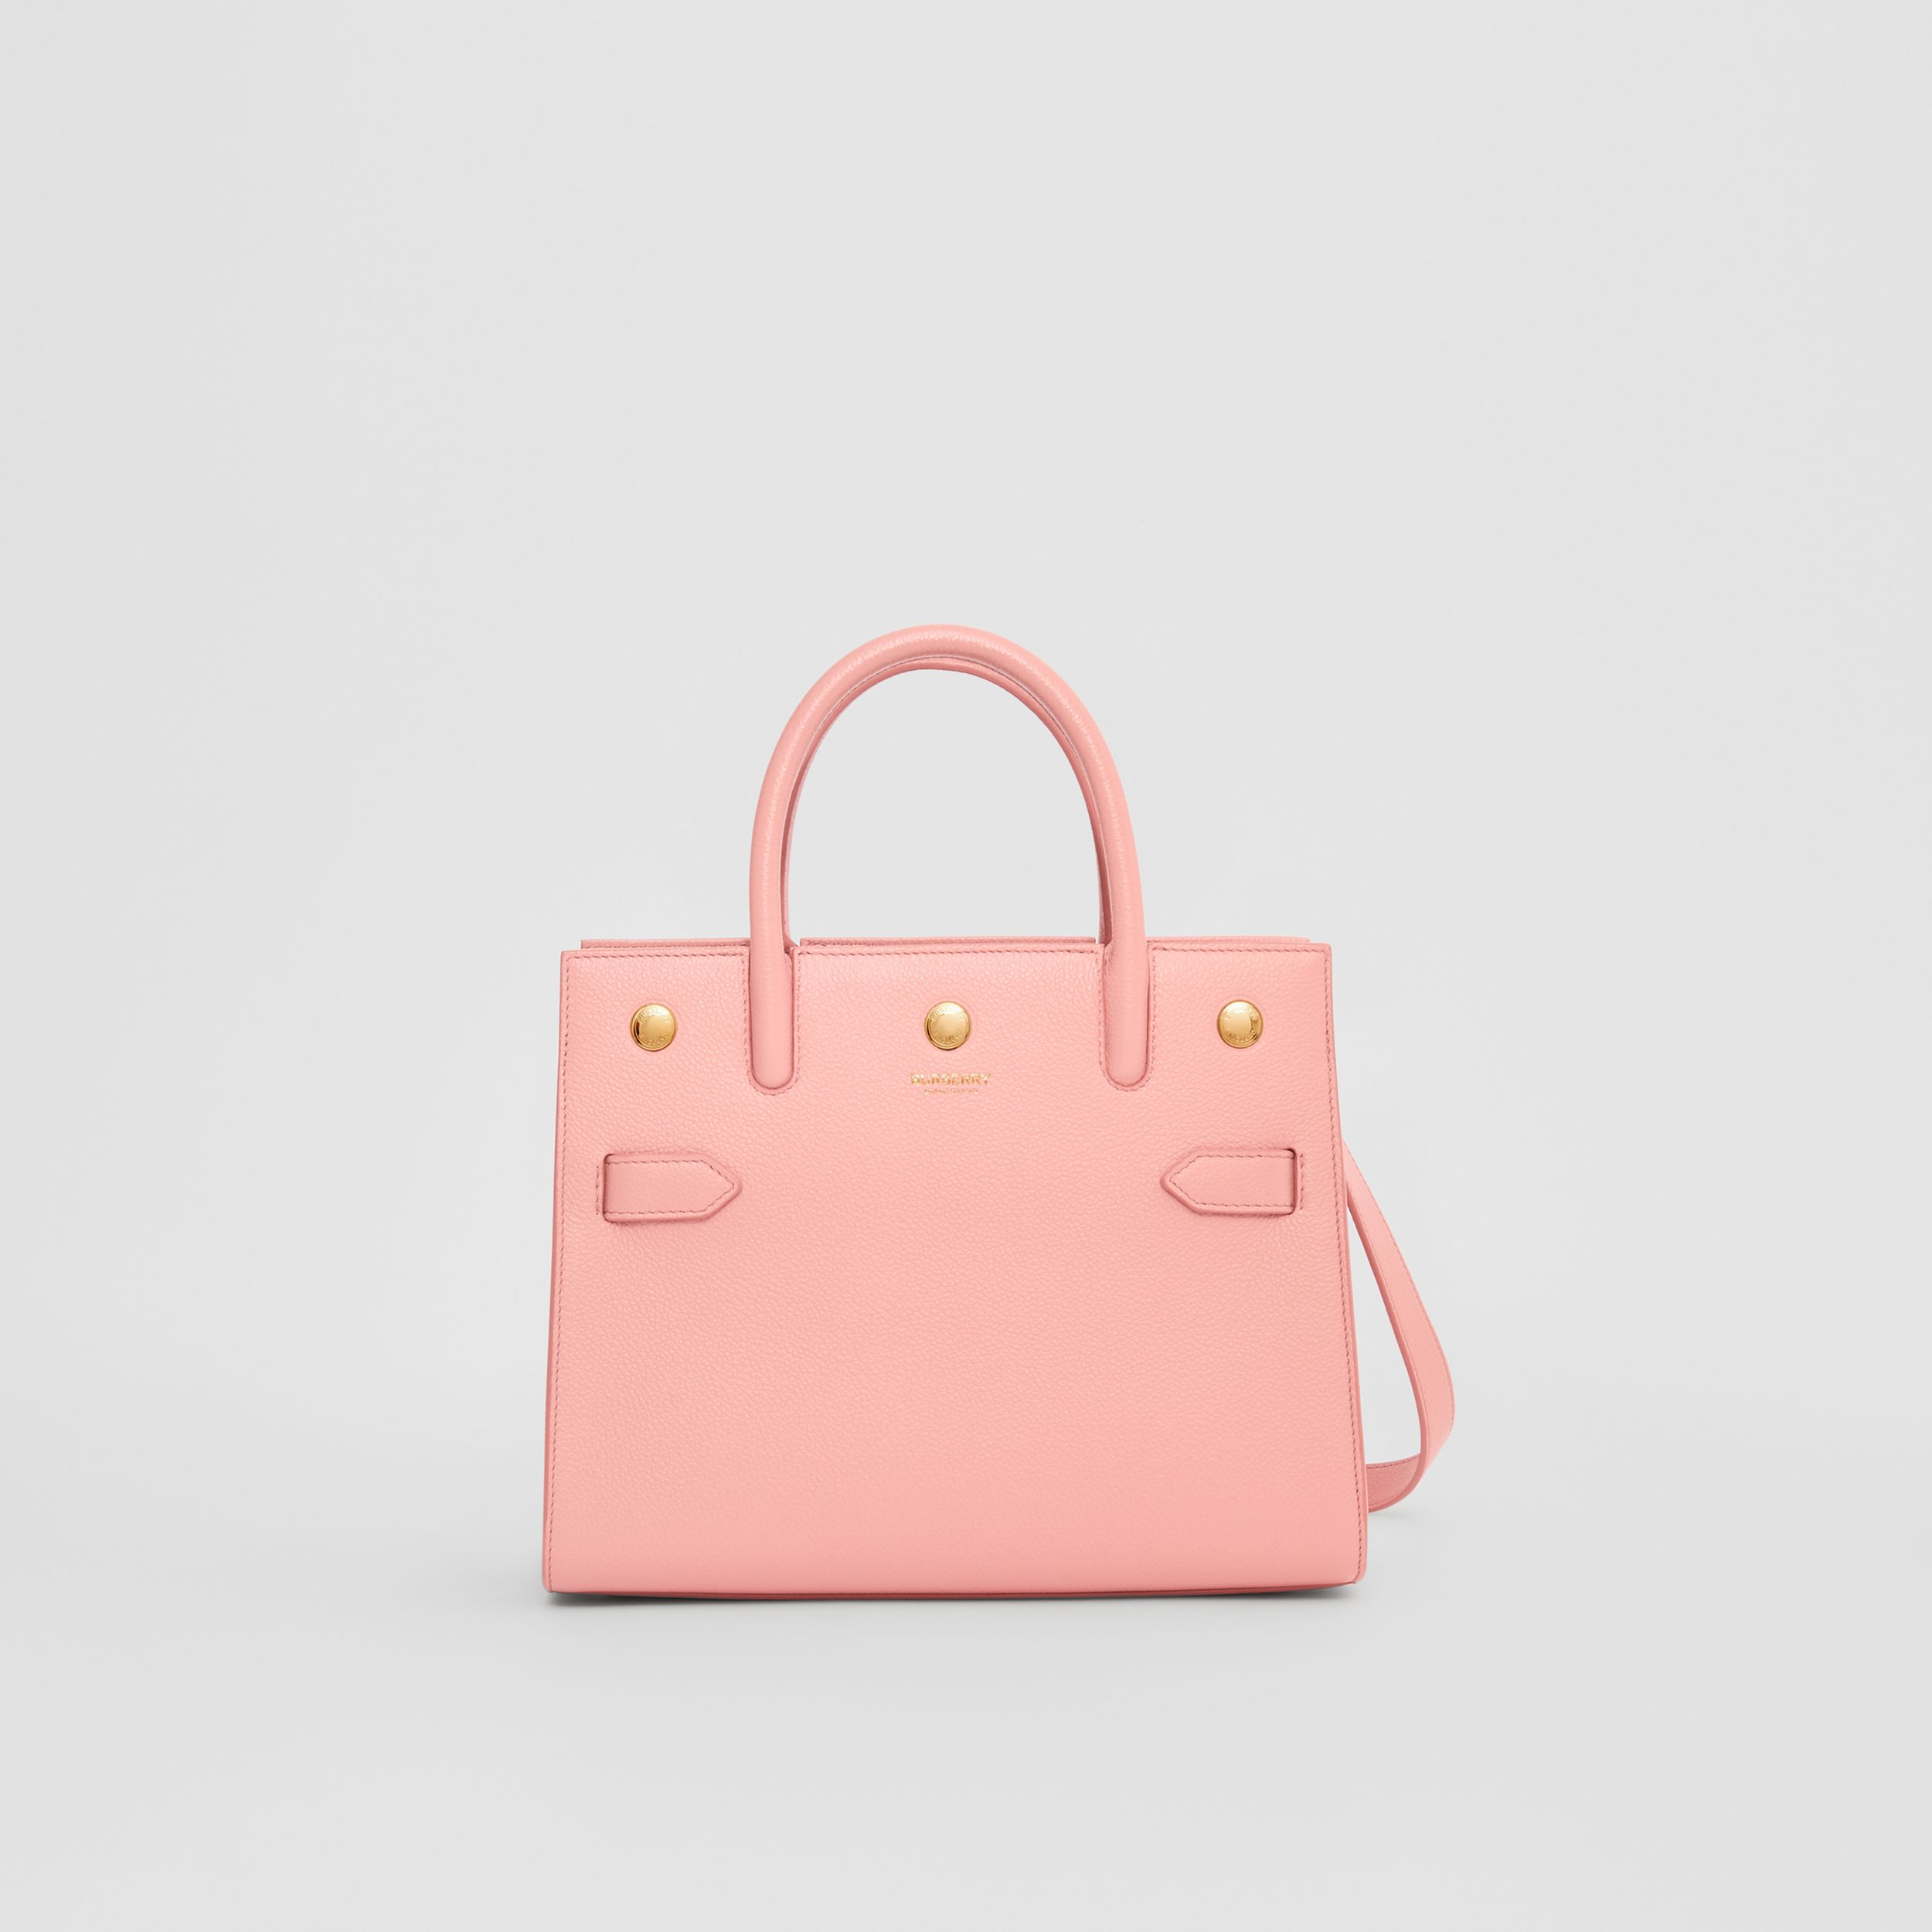 Borsa Title mini in pelle con due manici (Rosa Fard) - Donna | Burberry - 1